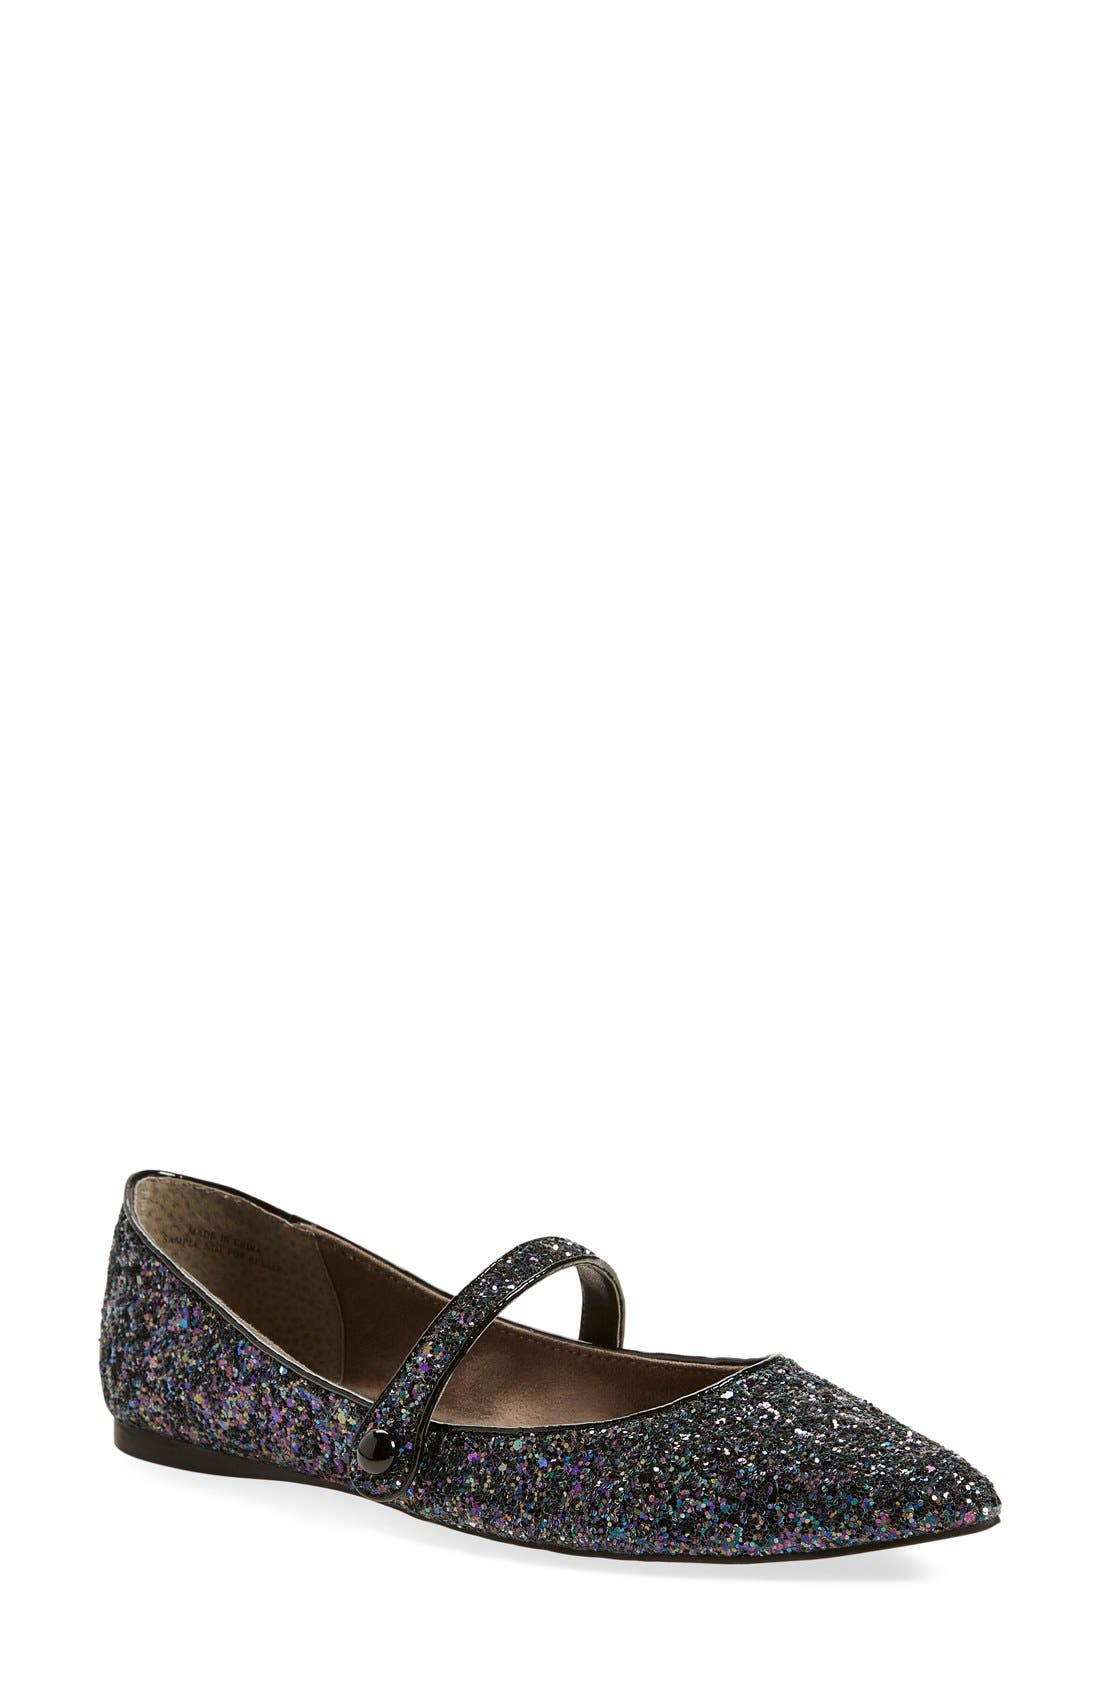 Alternate Image 1 Selected - BP. 'Maribel' Mary Jane Glitter Flat (Women)